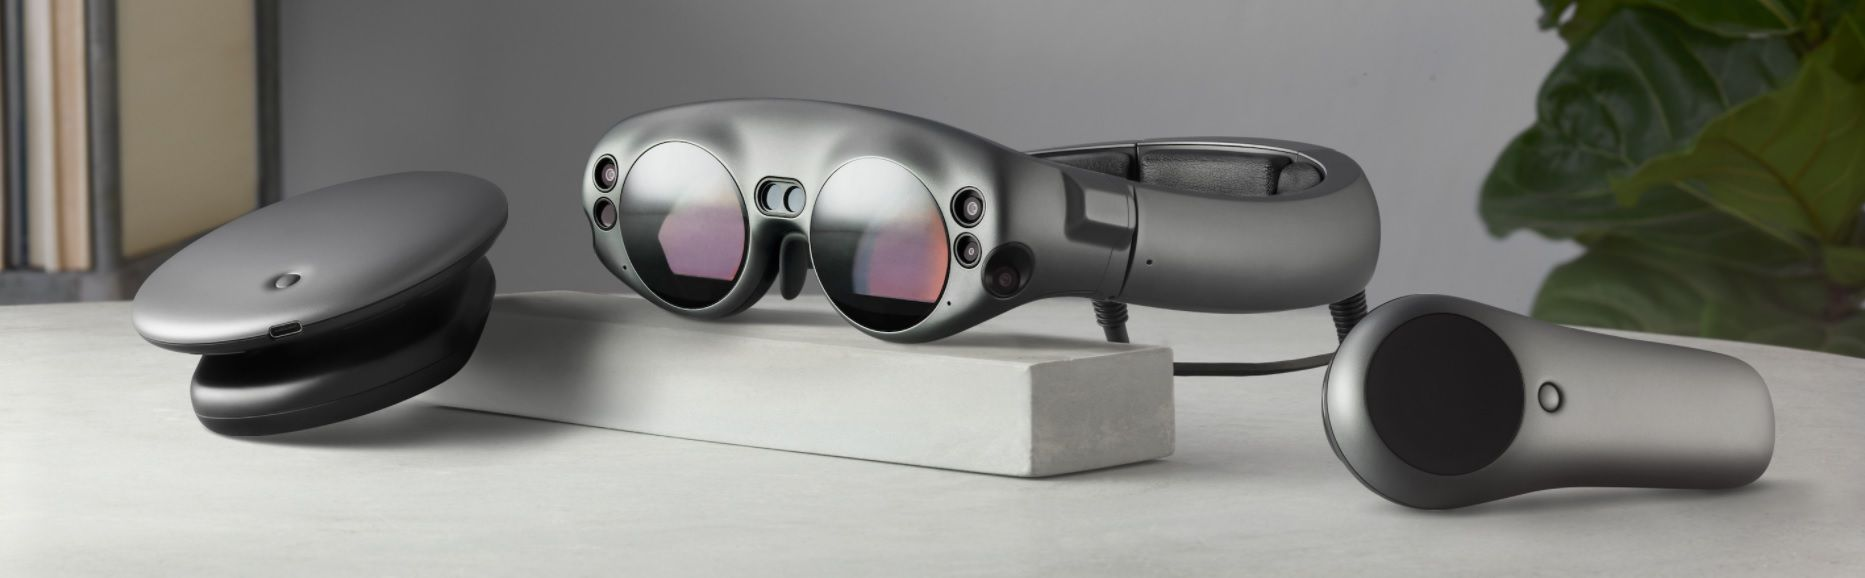 magic leap one gafas